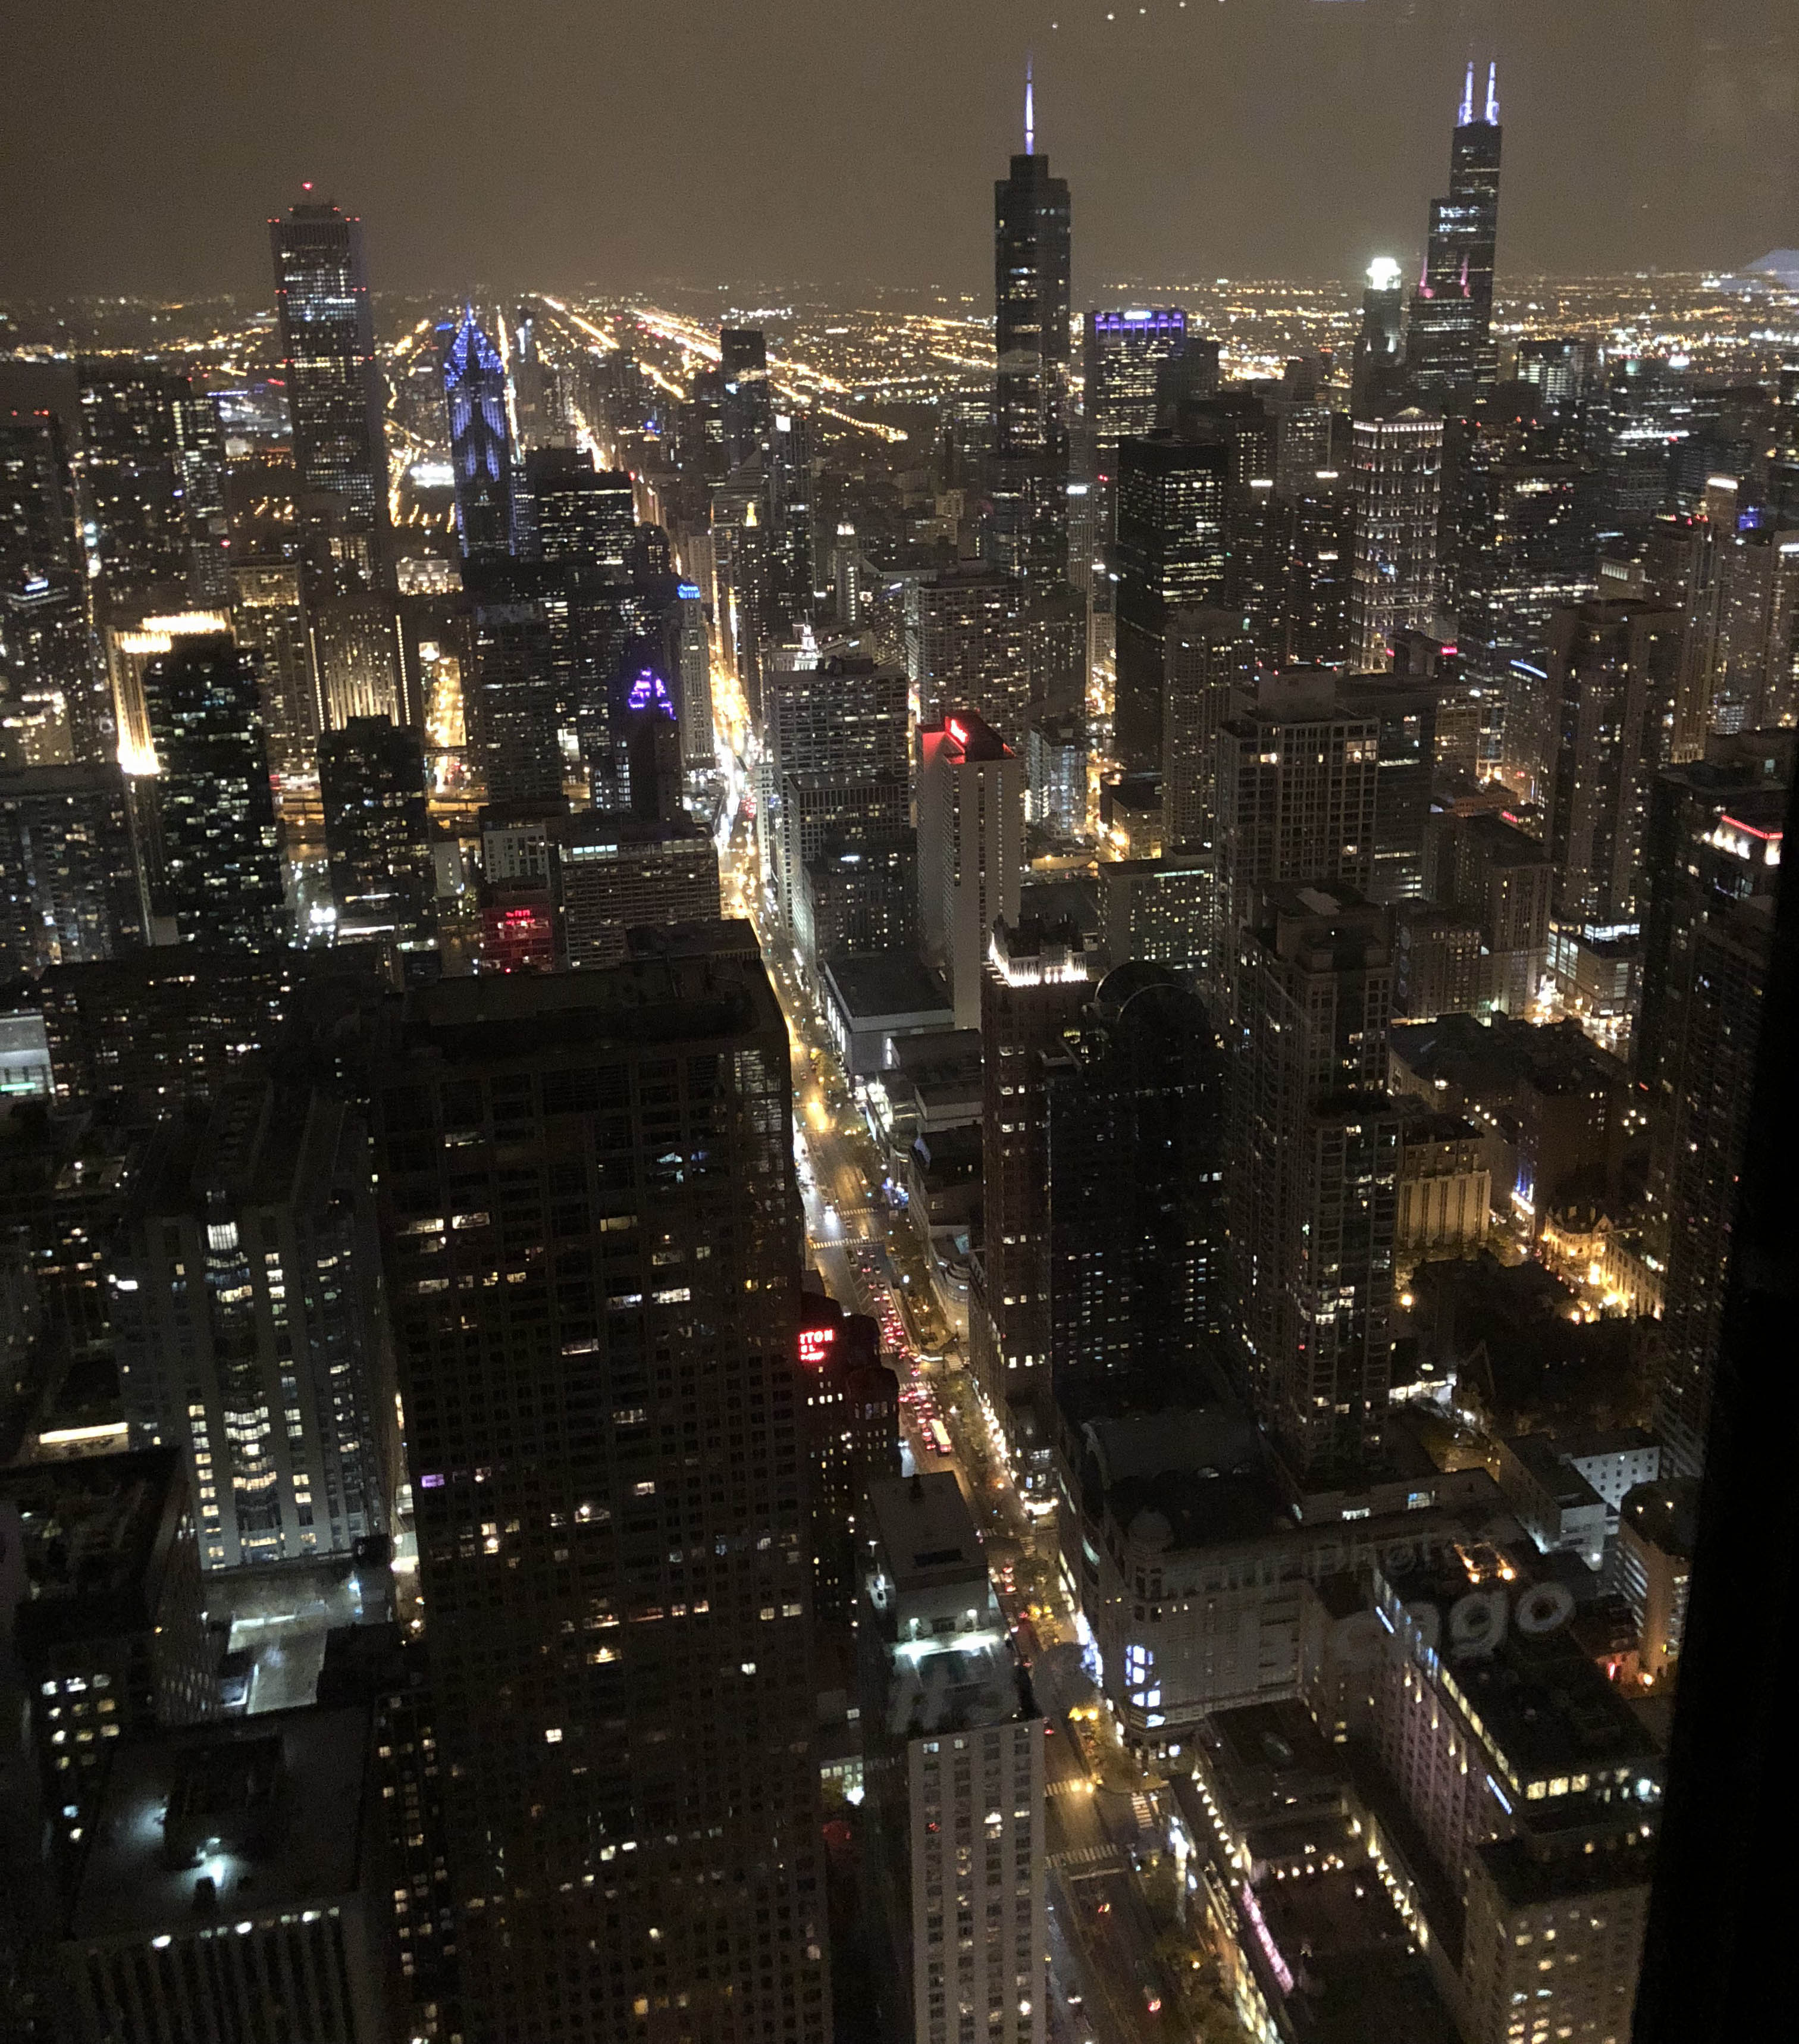 The view from the 94th floor of 875 N. Michigan Ave.